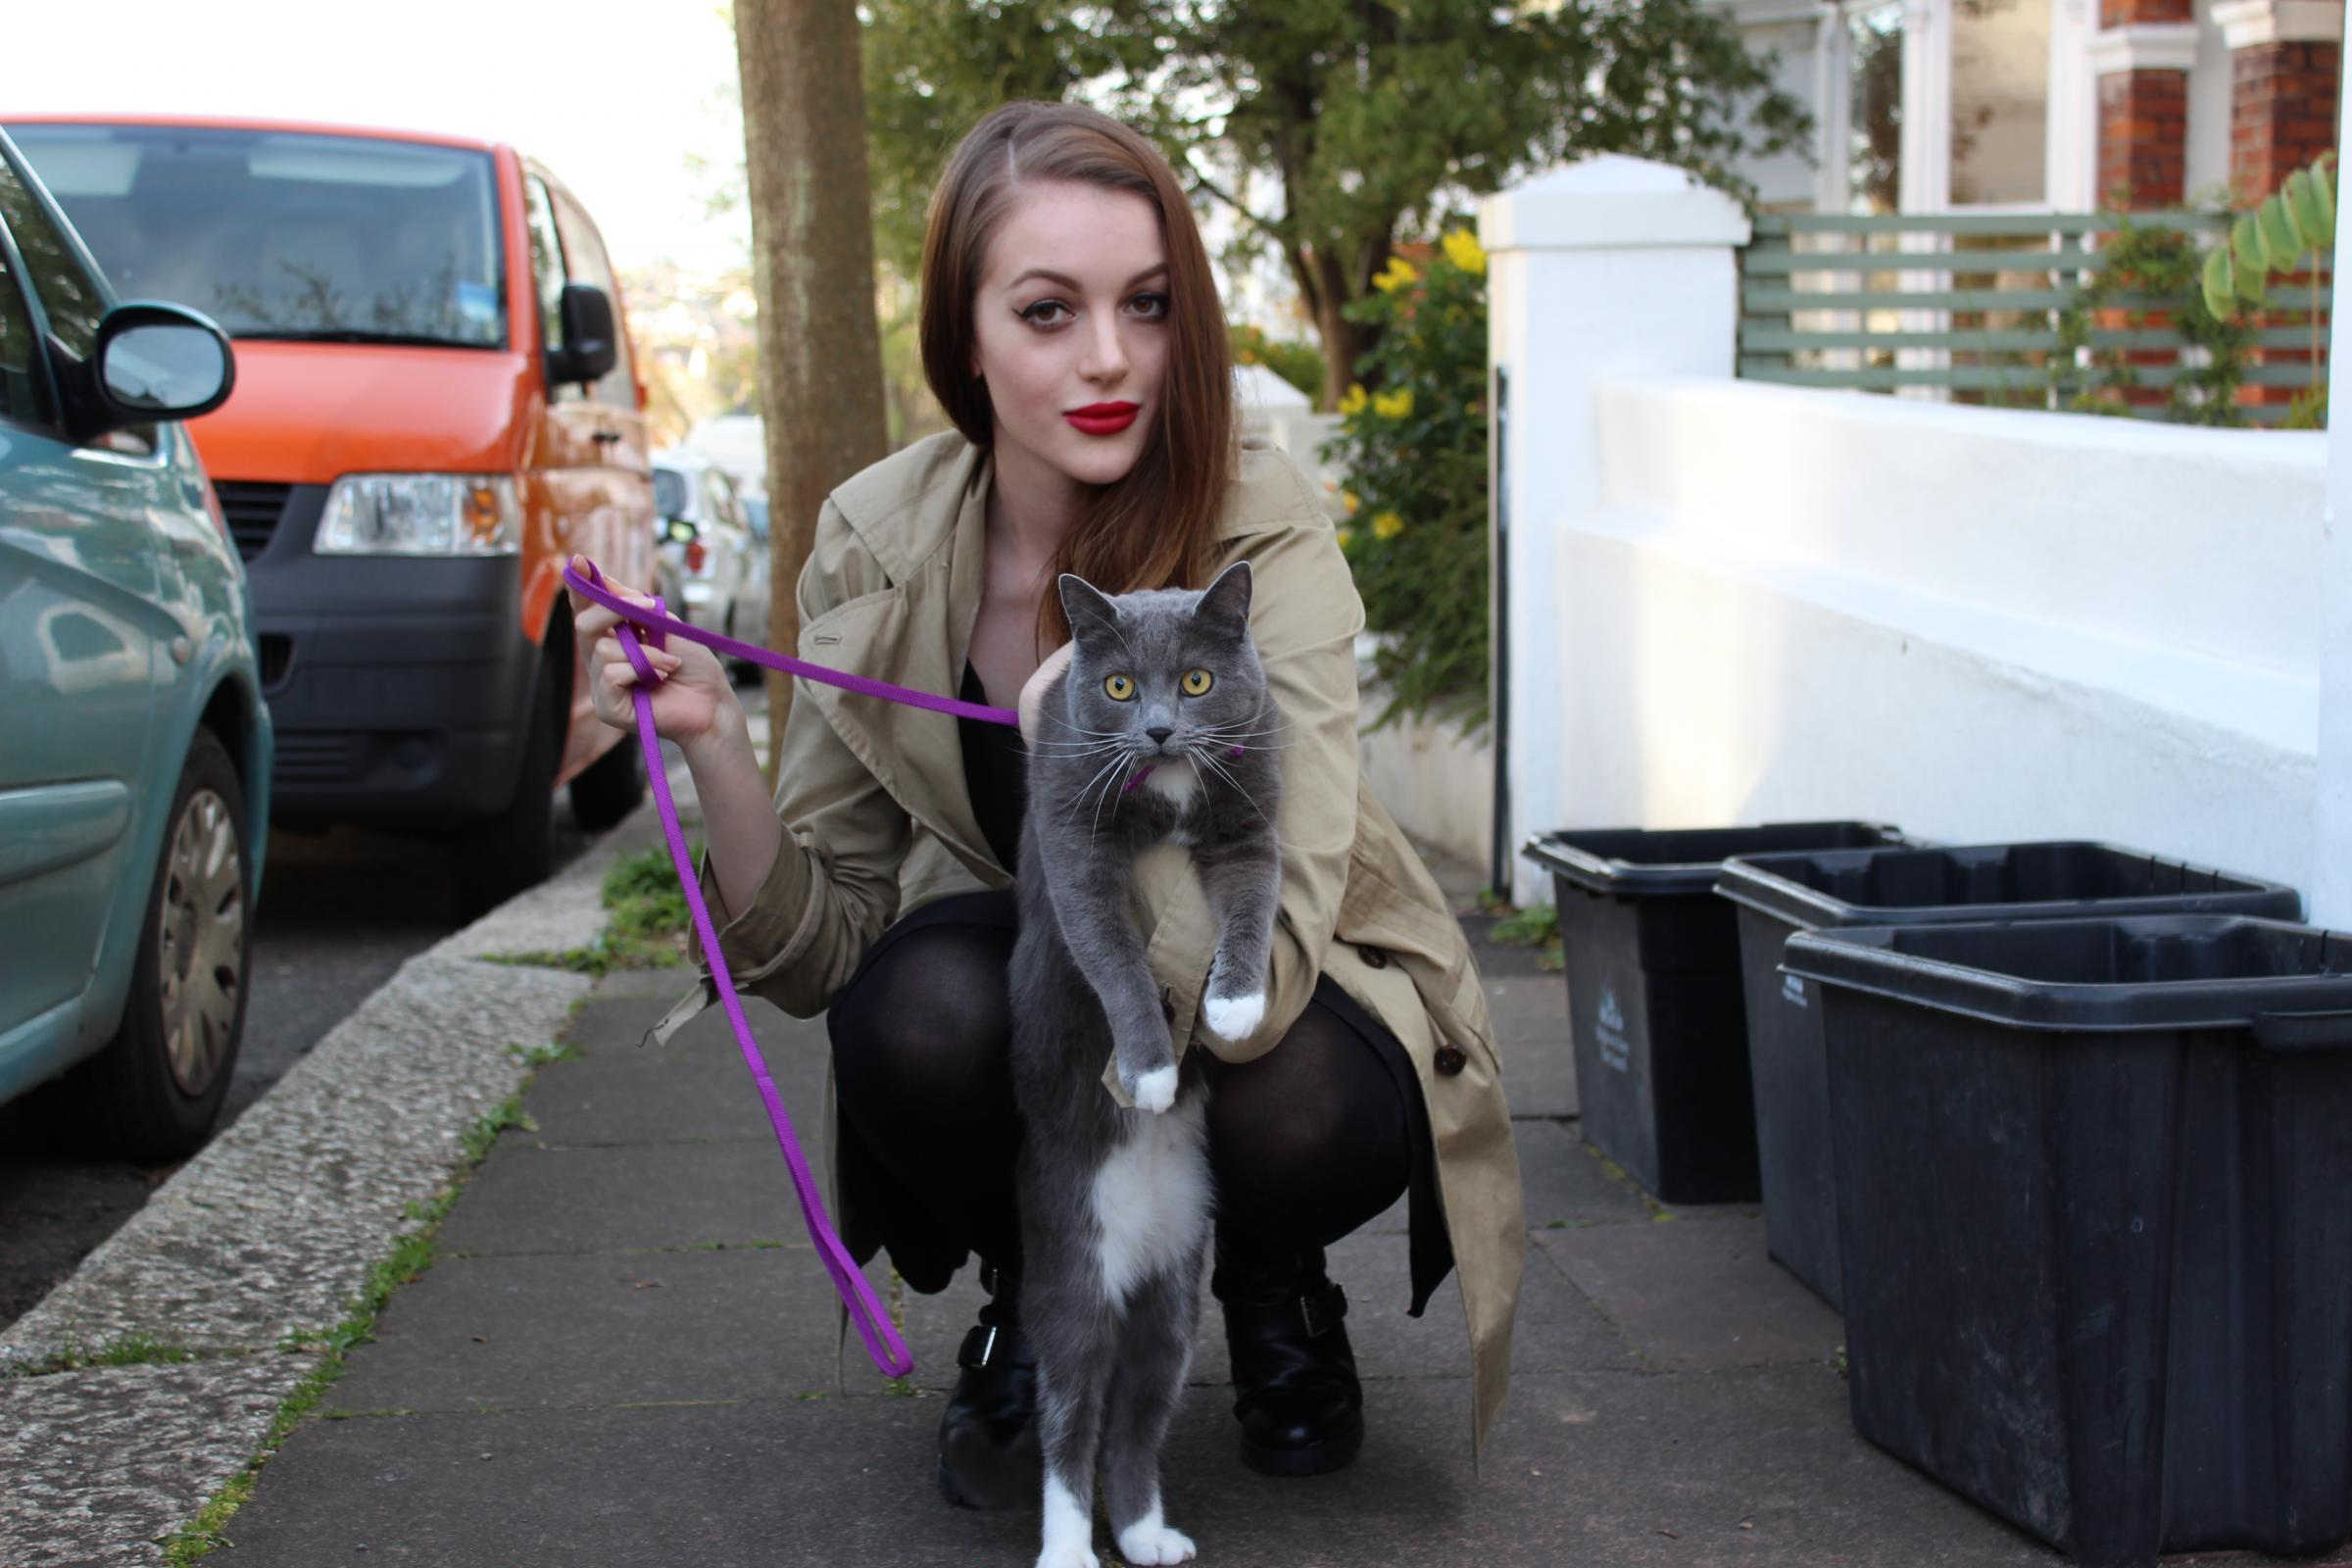 Walkies for Rosy and her pet cat Blue